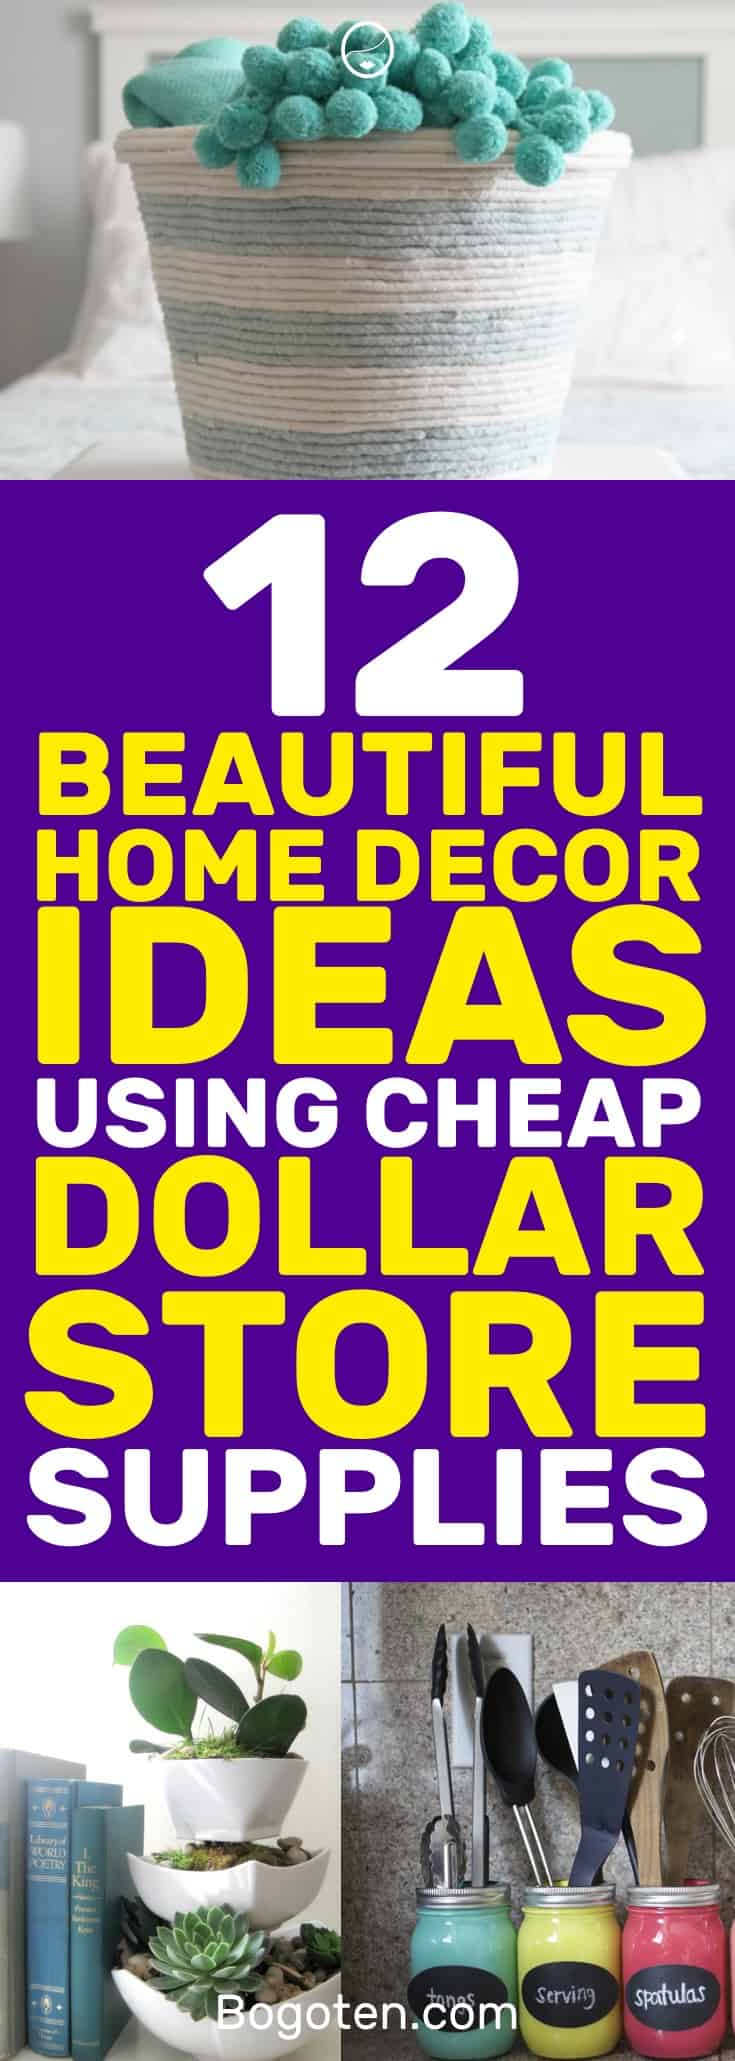 I wanted to decorate my home on the cheap without it looking cheap. These Dollar Store home decor ideas are perfect for me. Pinning! #HomeDecor #DIY #HomeDecorIdeas